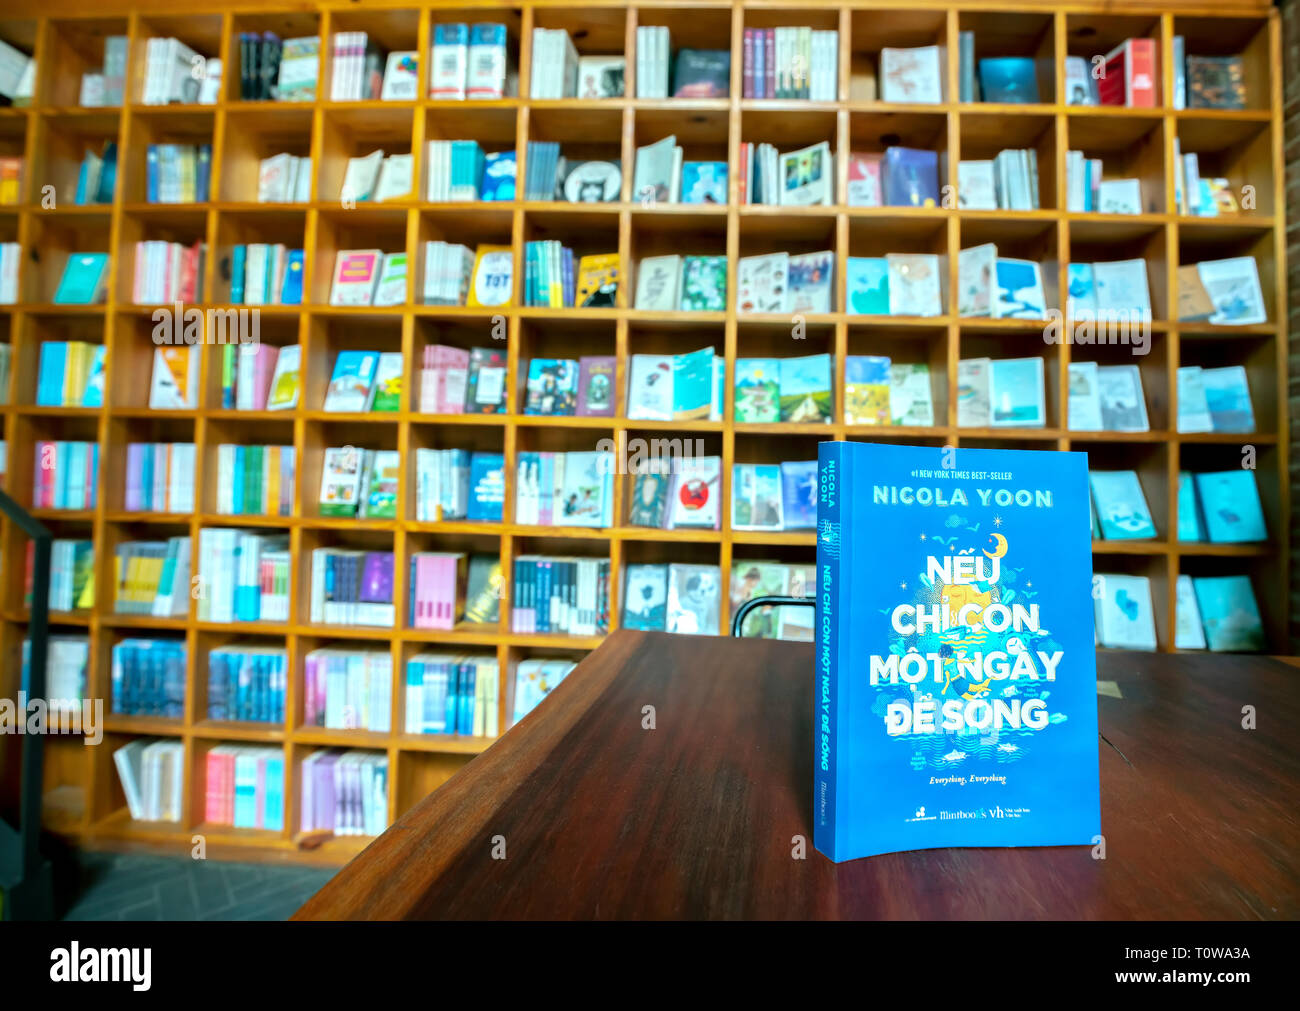 Colorful book shelves packed with books in a library. - Stock Image